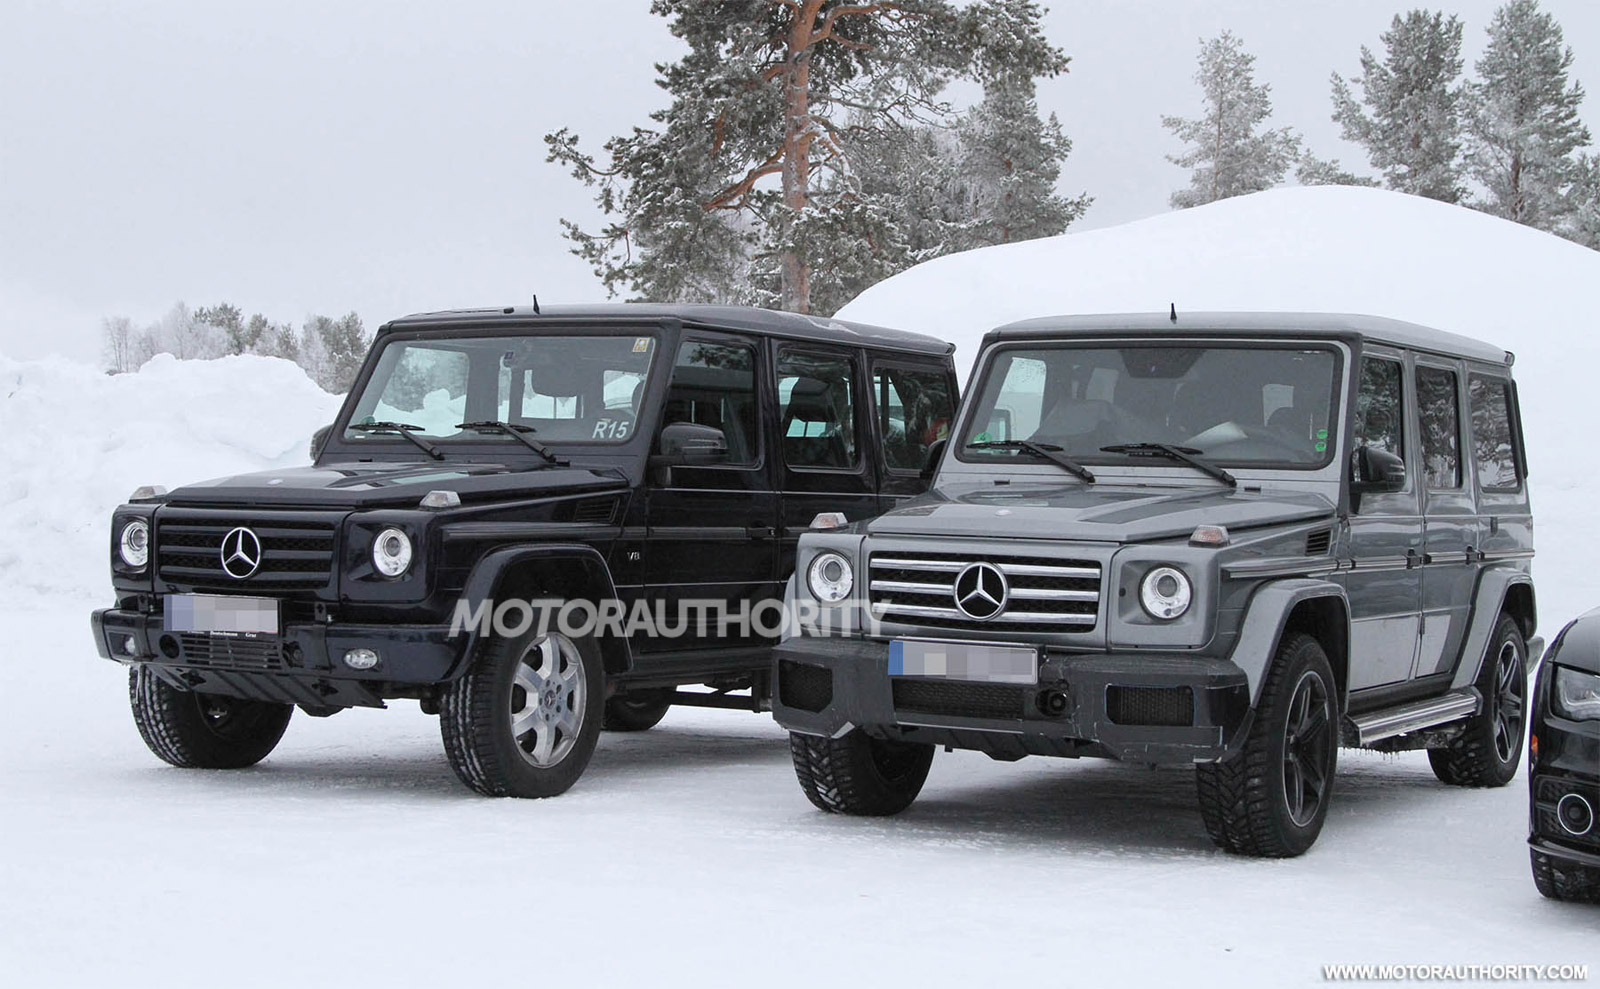 2013 Mercedes Benz G63 Amg Spy Shots